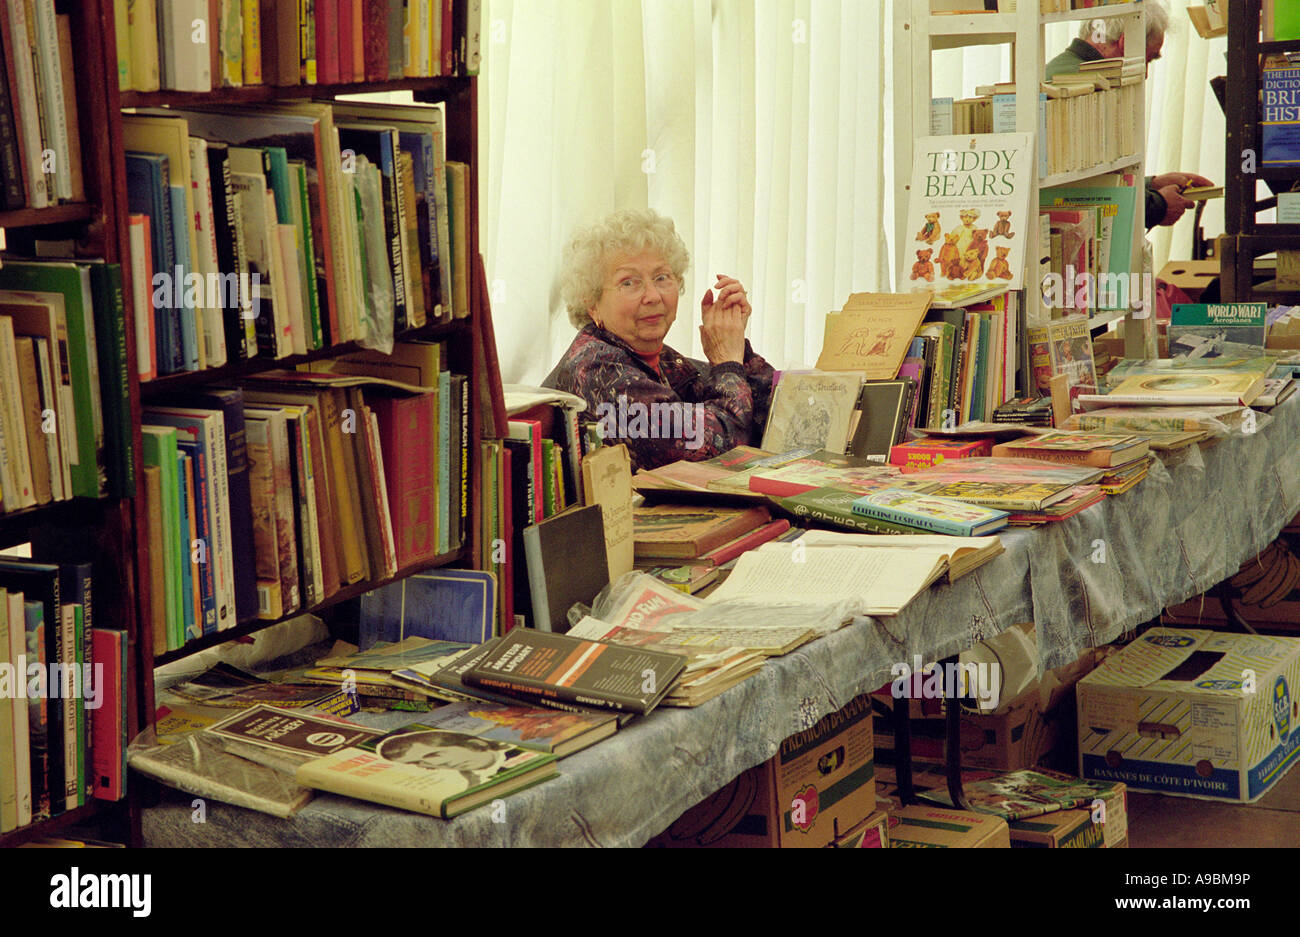 Wigtown Book Festival stall holder selling second hand books at Wigtown National Book Town in the Machars of Galloway - Stock Image